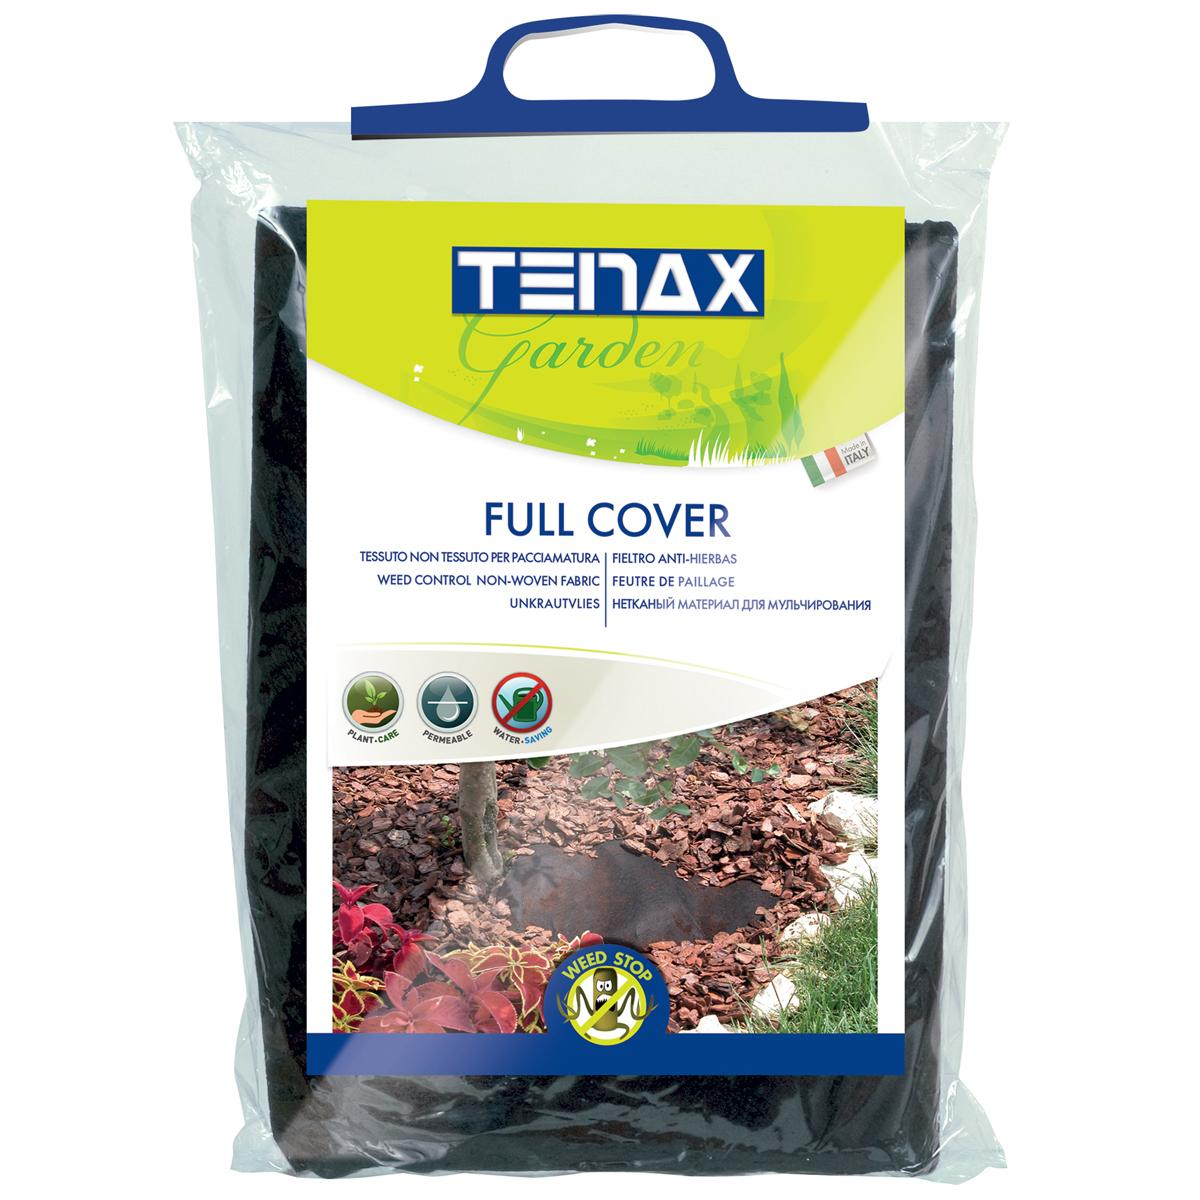 Tenax Full Cover 1,8 X 3 M Nero